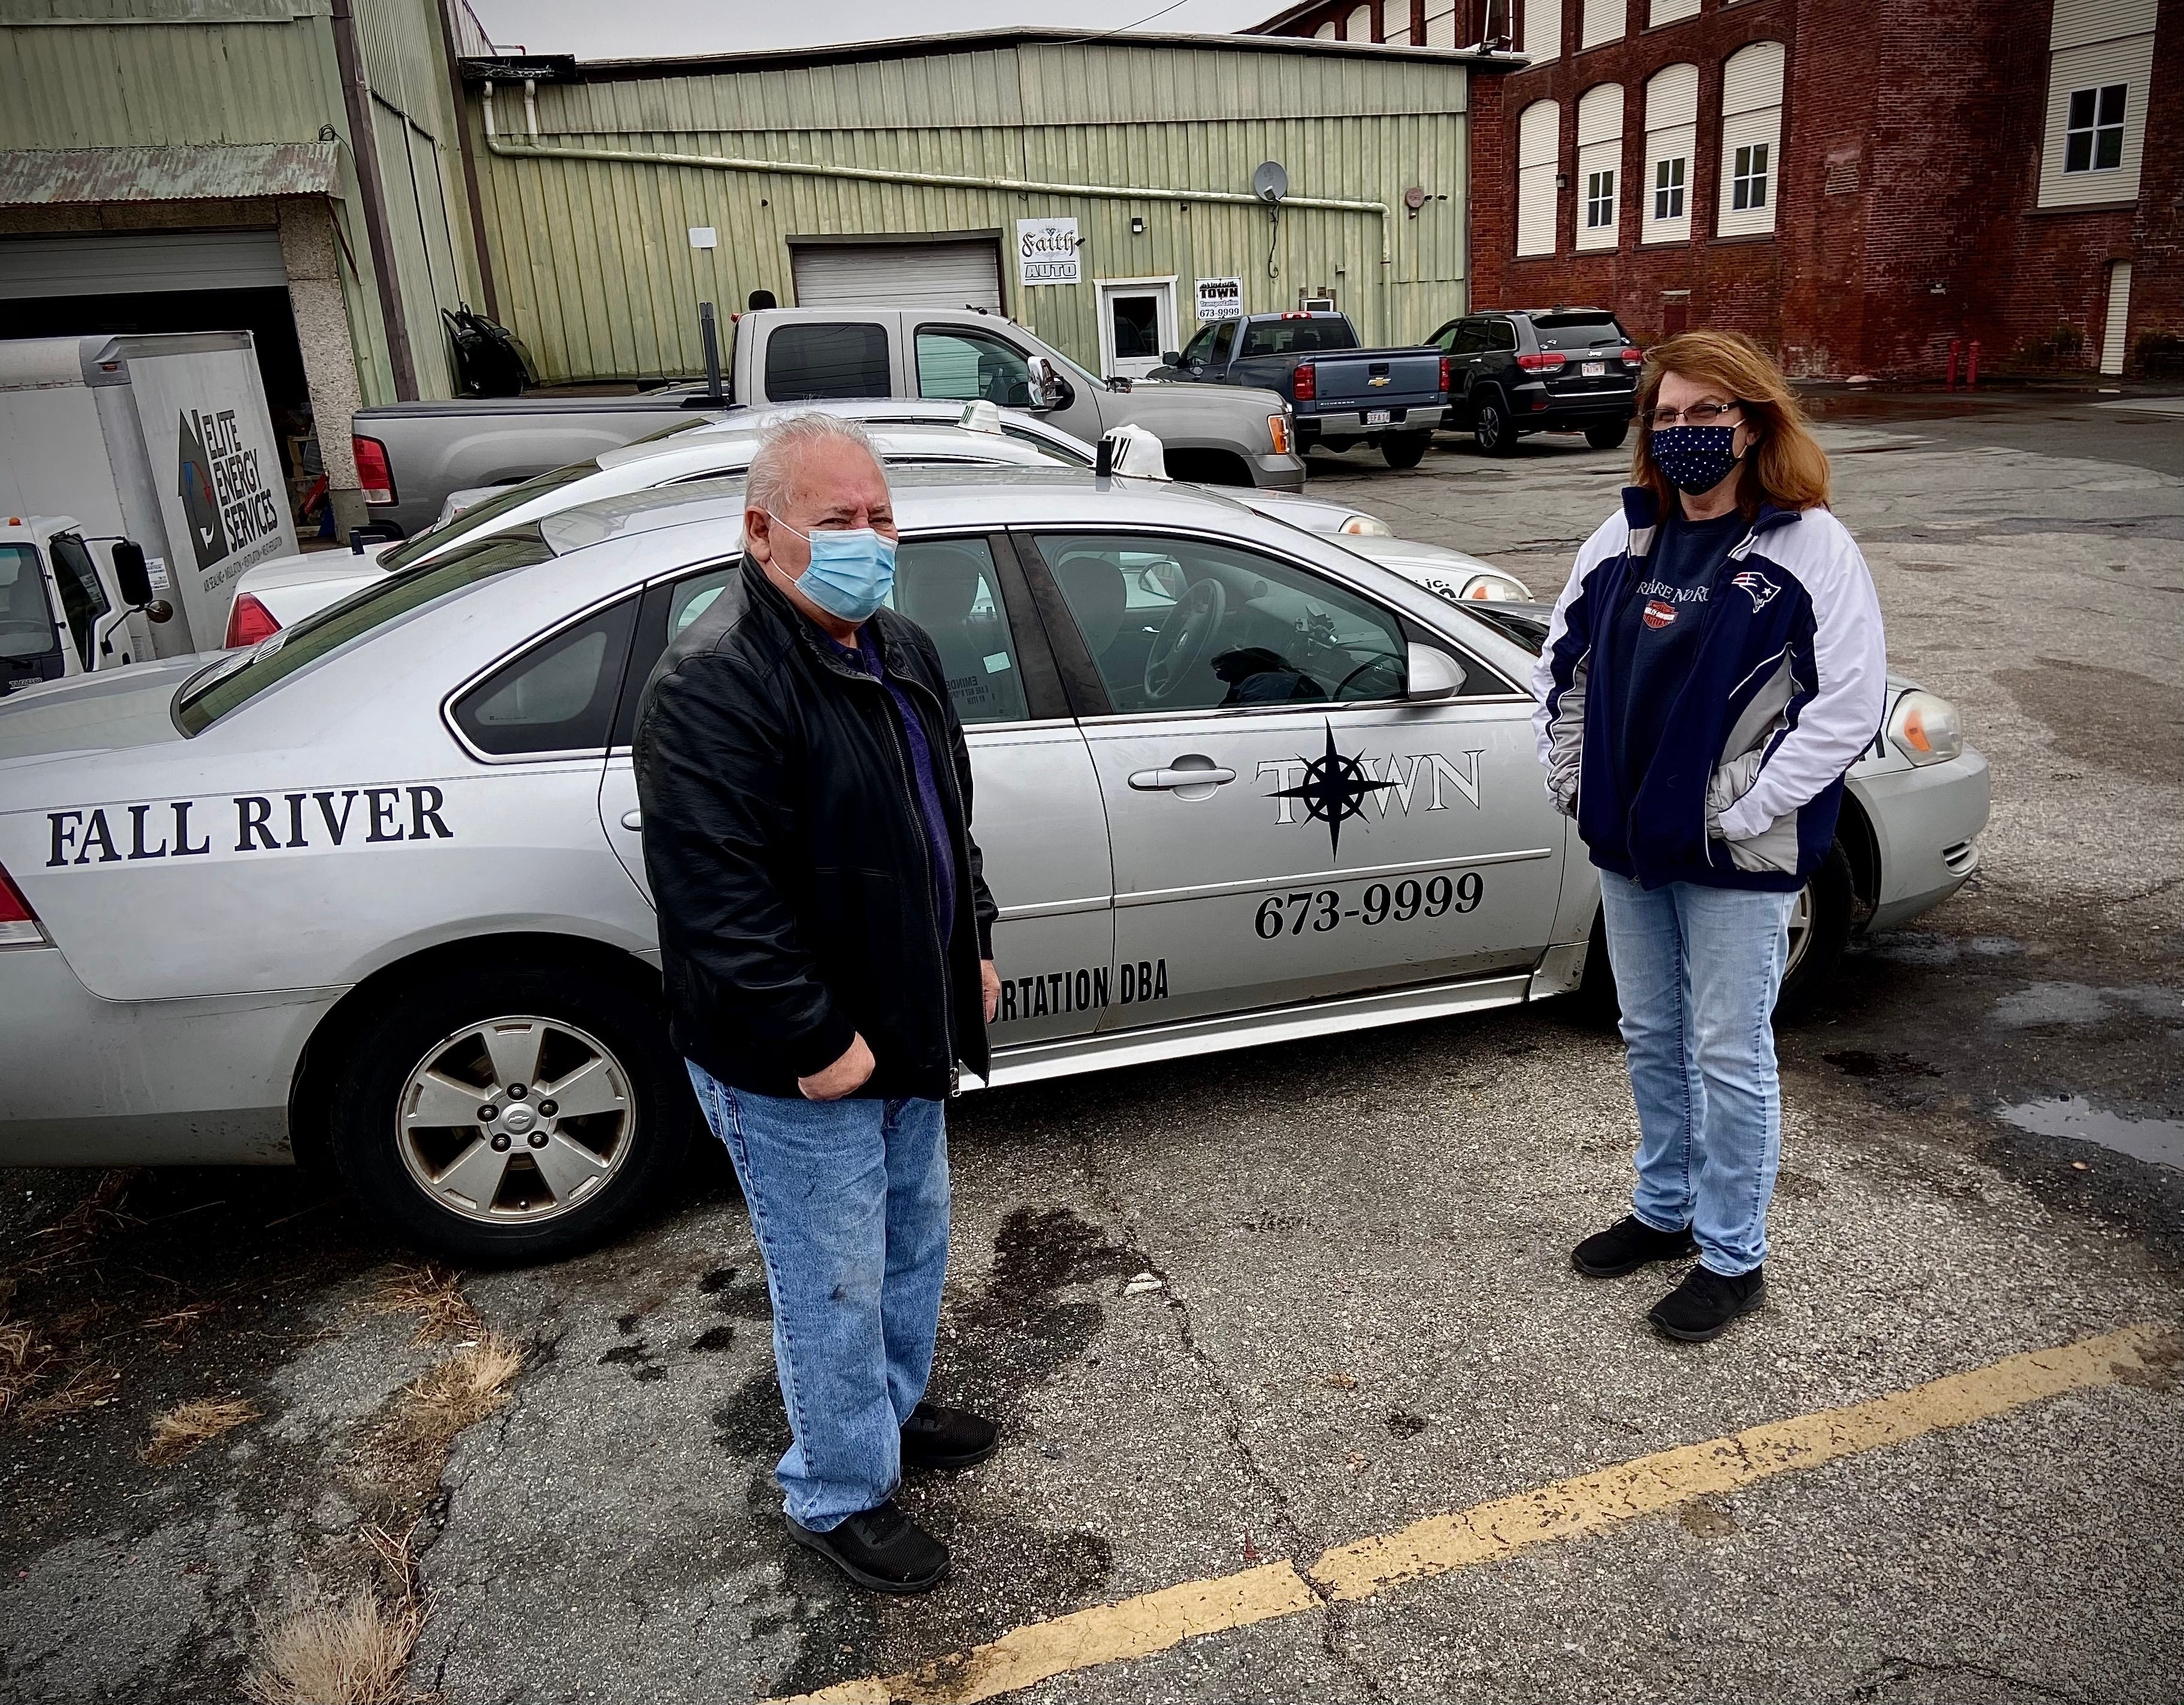 Fall River taxi cab companies face revenue loss during COVID pandemic